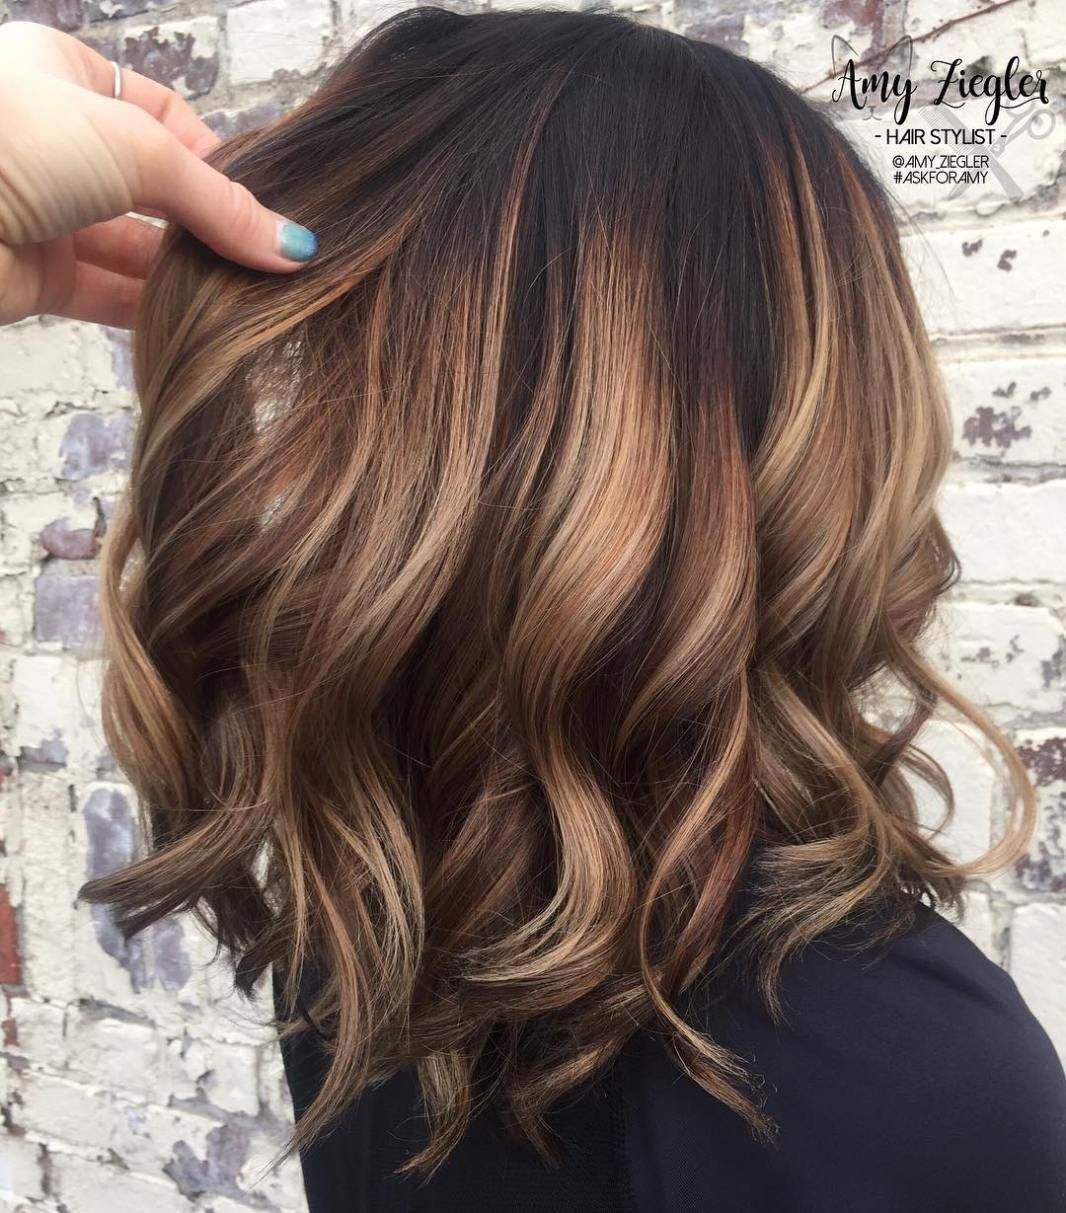 Strandlighting Is The Hottest Hair Color Trend Right Now In 2020 Hair Color For Morena Hair Color For Morena Skin Hair Color Asian